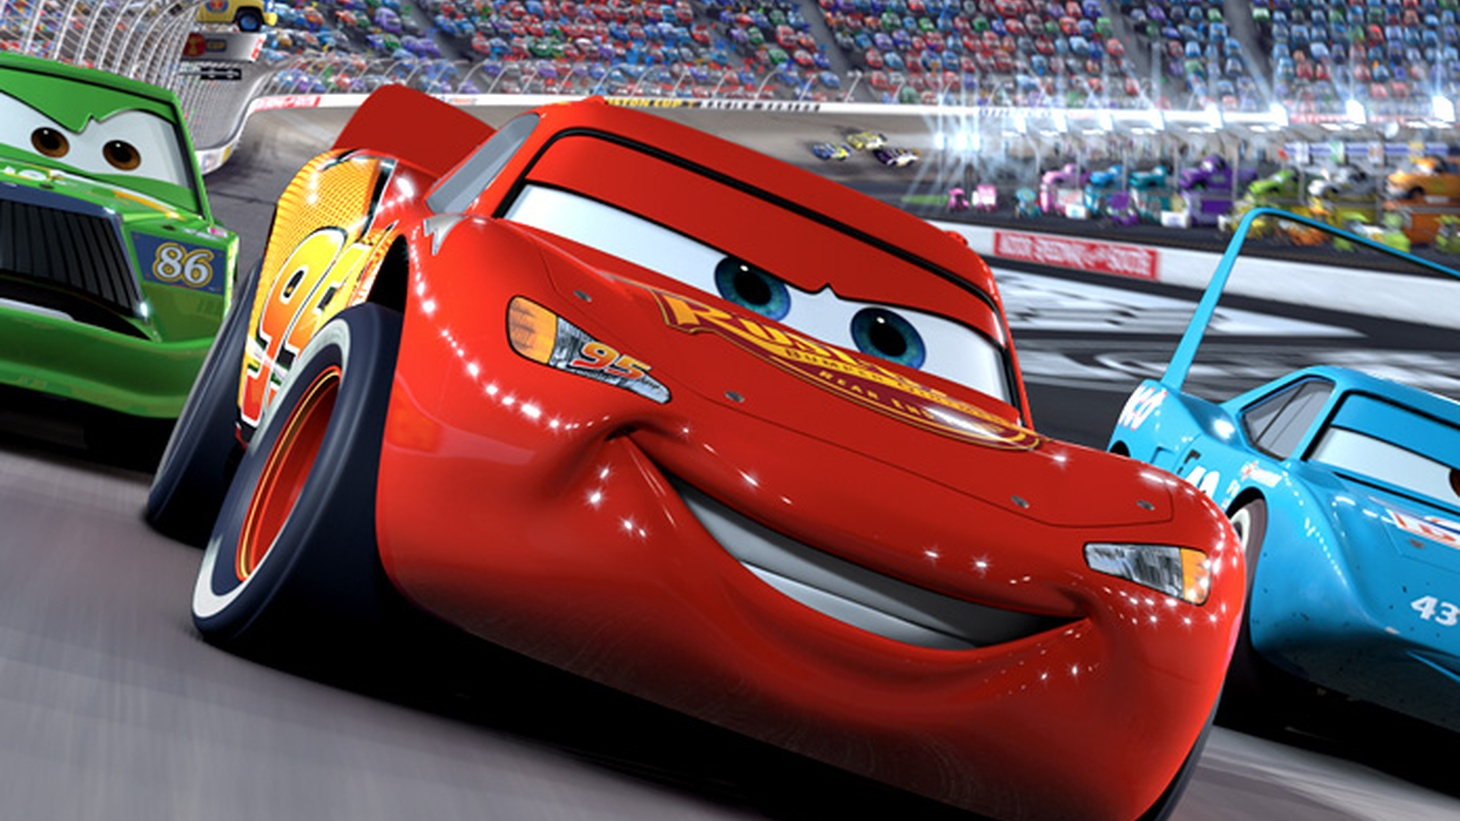 Cars 3 is about Lightning McQueen. This time the hotshot is a faded champion who yearns to win one more race. He's an intriguing hero for young audiences, a living legend and incipient geezer struggling to compete against a new breed of race cars.